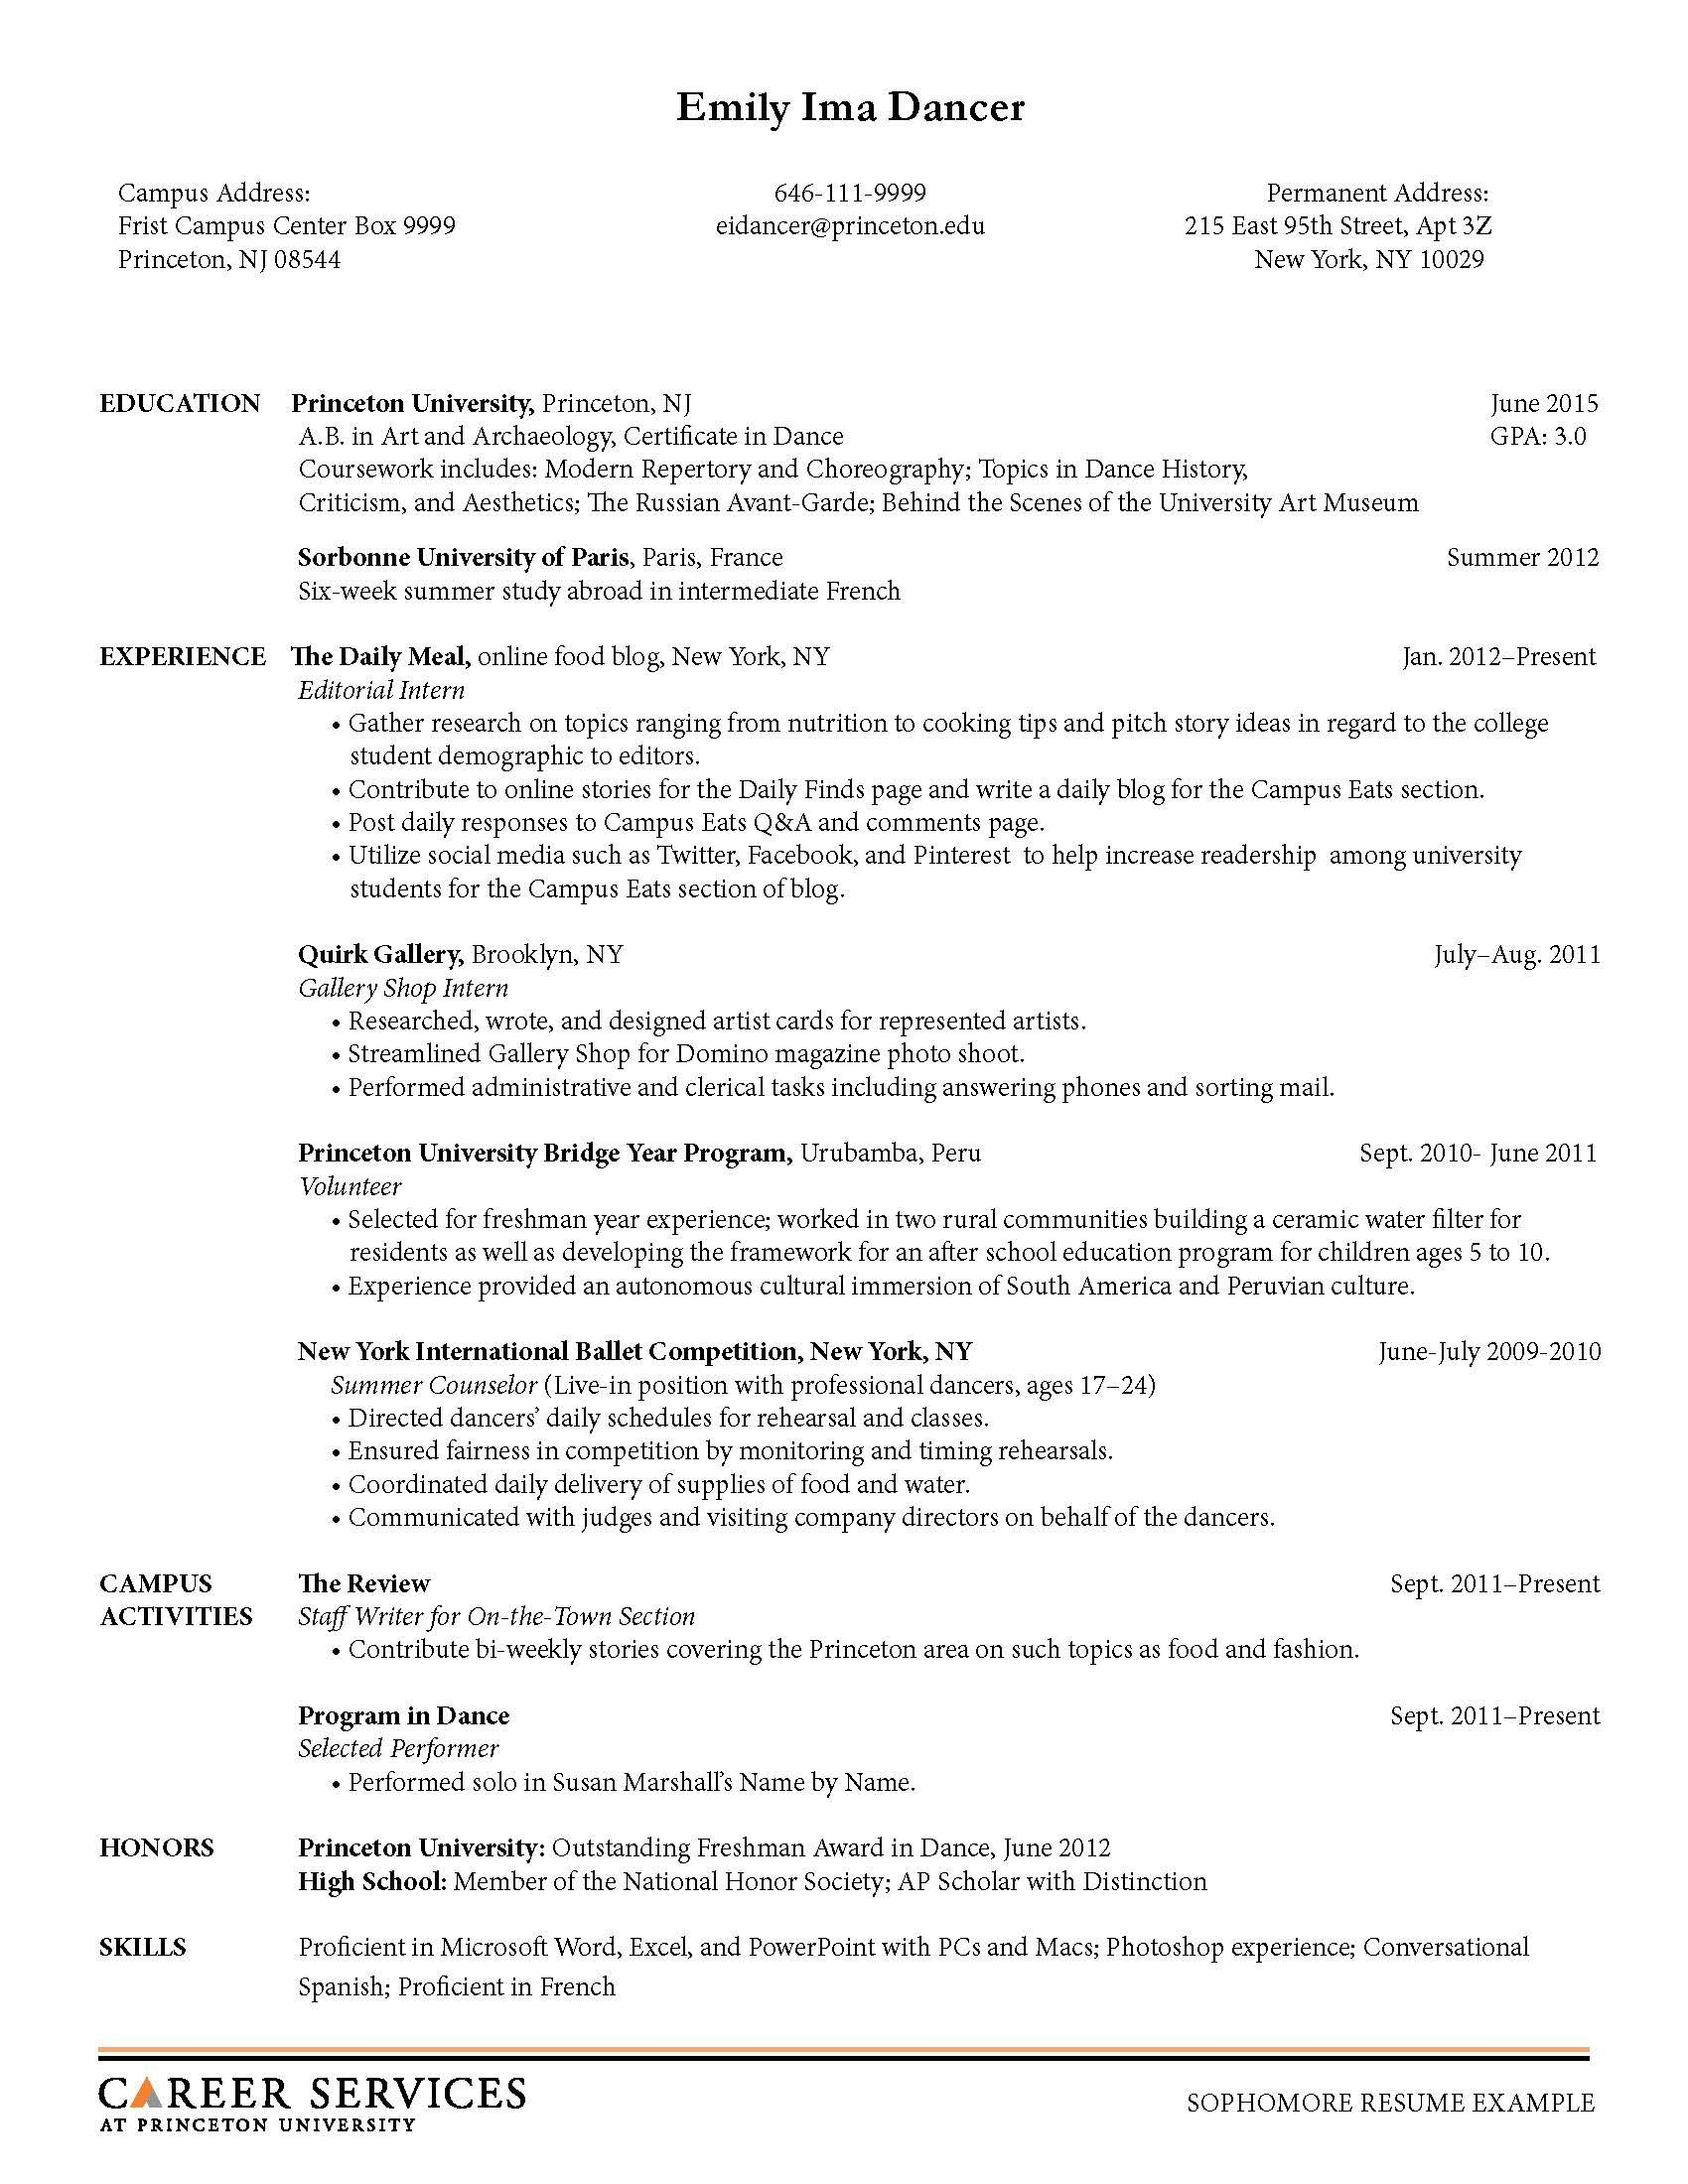 branded executive resumes written by an executive resume writer and former recruiter that get professionals awarded interviews and winning leadersh - Professional Cv And Cover Letter Writing Service